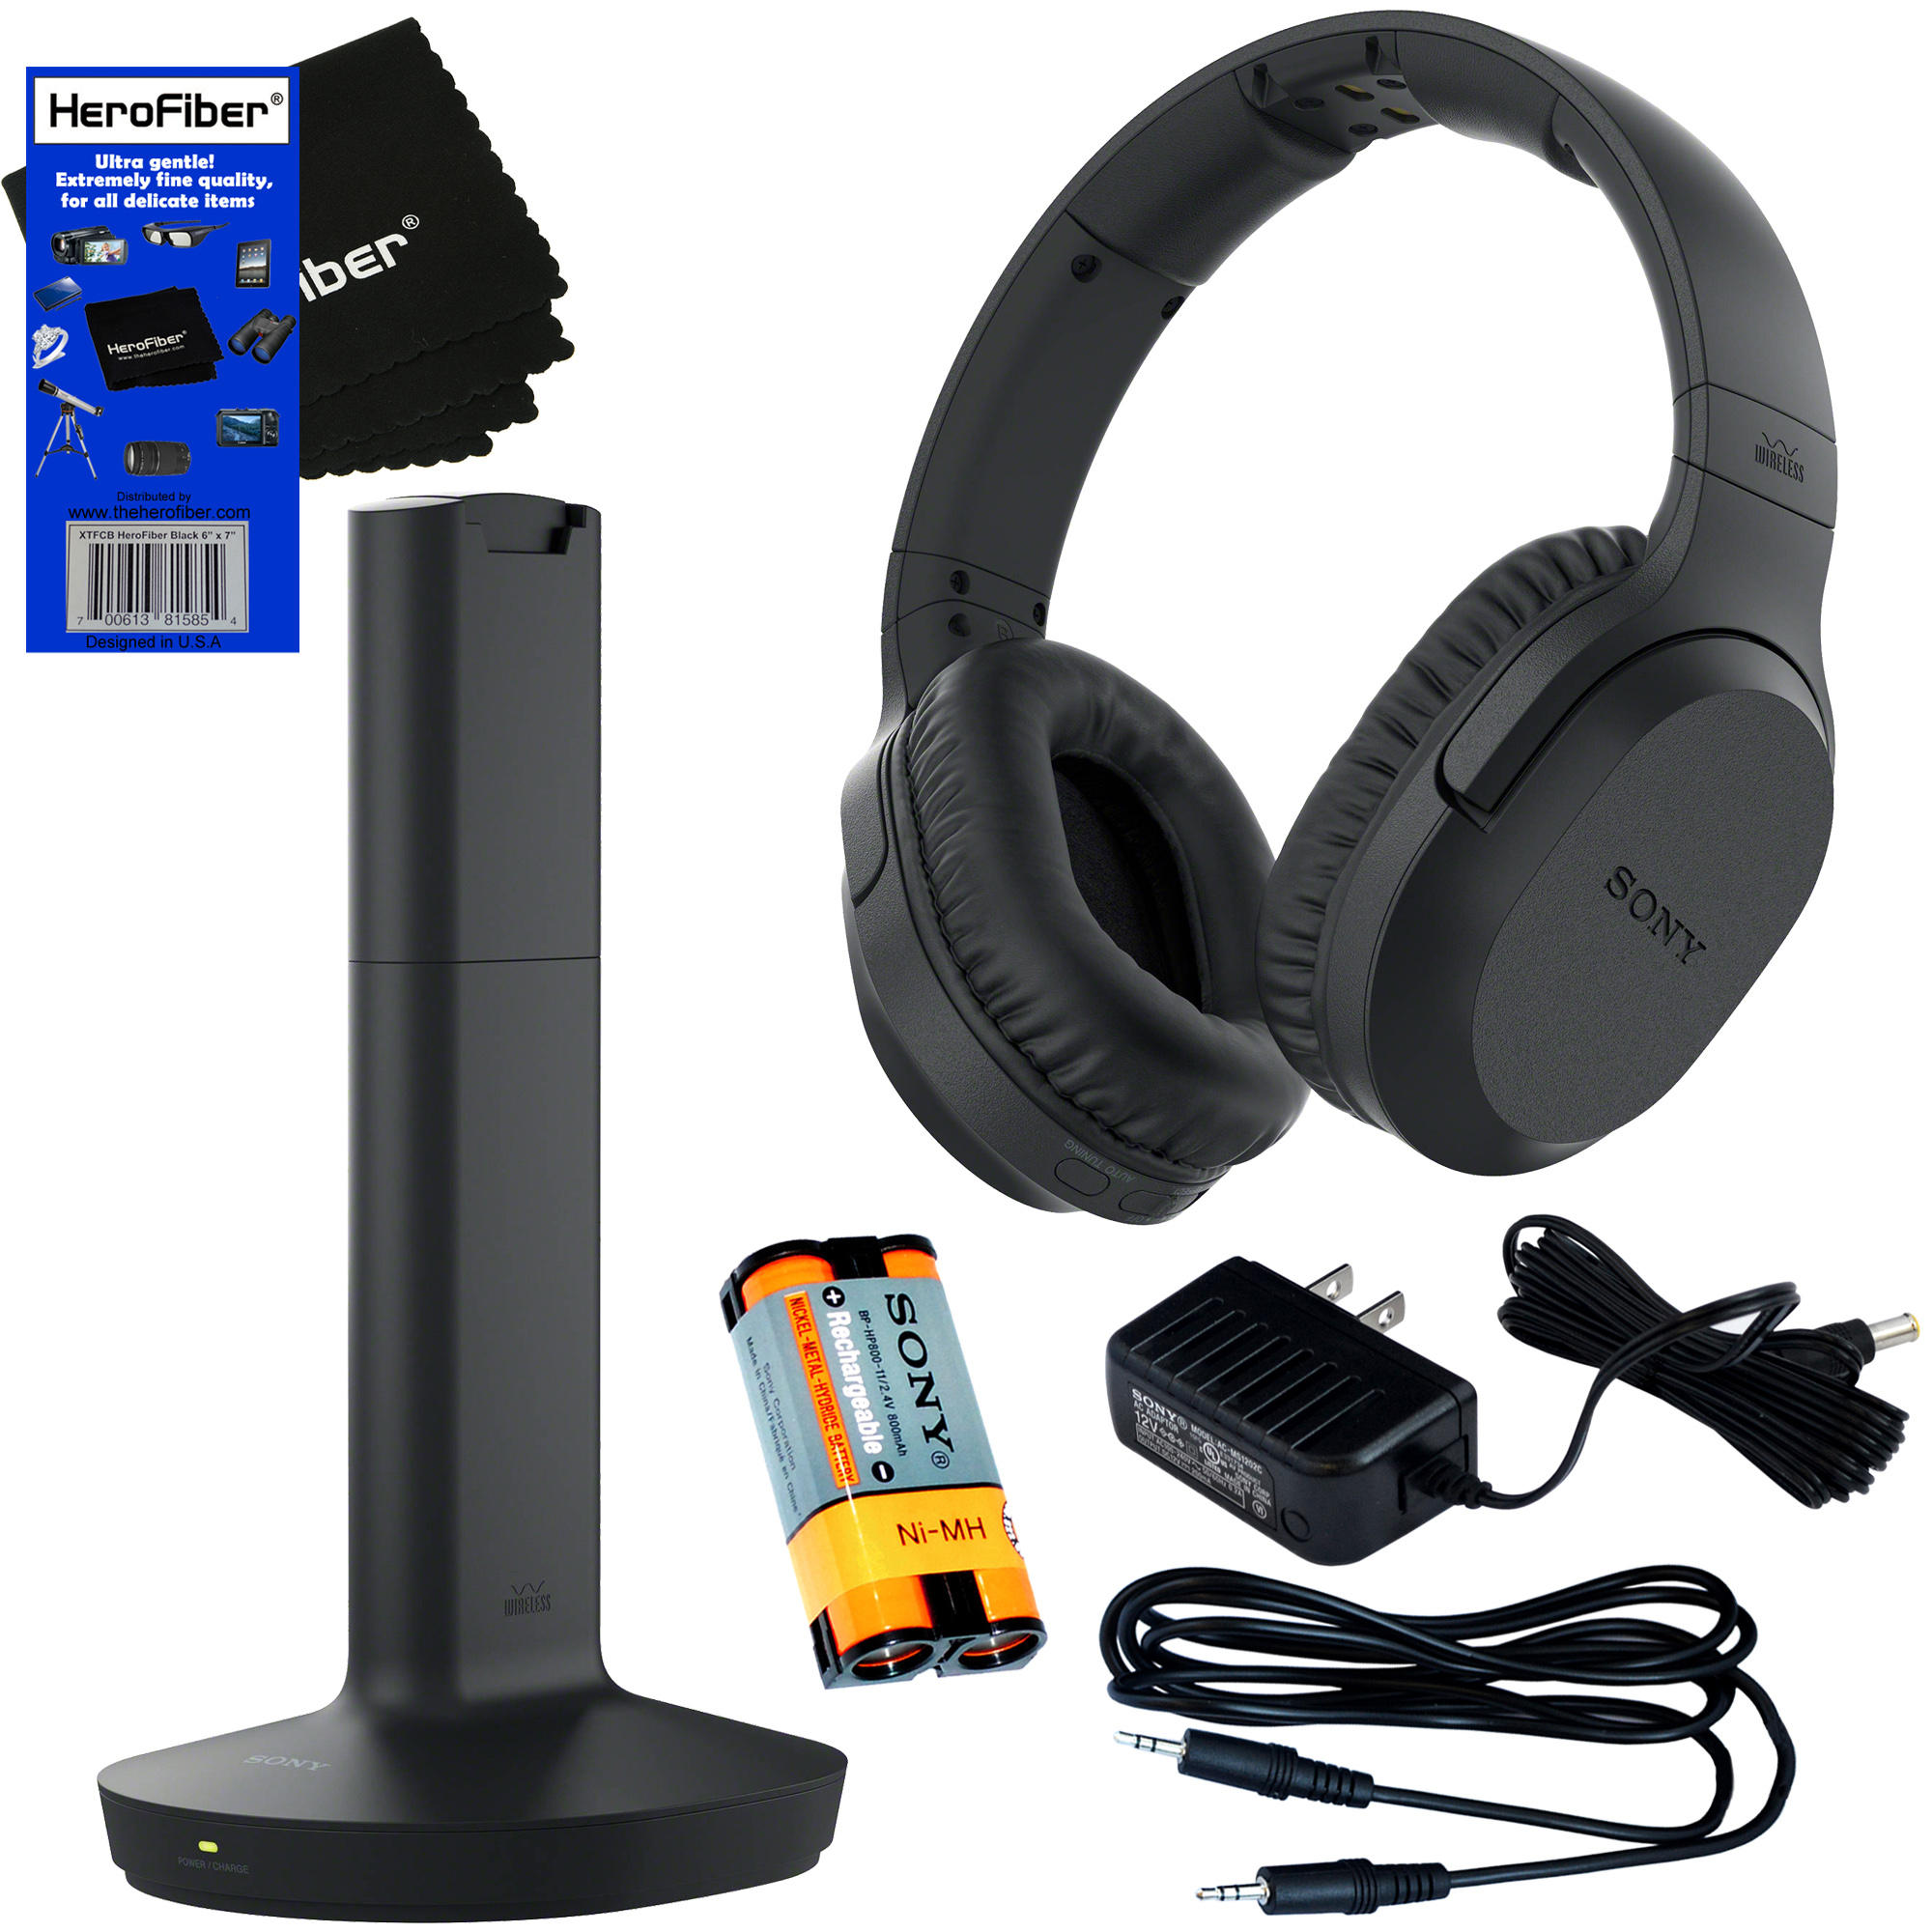 Sony RF995RK Wireless RF (Radio Frequency) Headphone with Transmitter Base Station (2017 model) + Sony Rechargeable Battery + Stereo Connecting Cable + AC adaptor + HeroFiber Gentle Cleaning Cloth